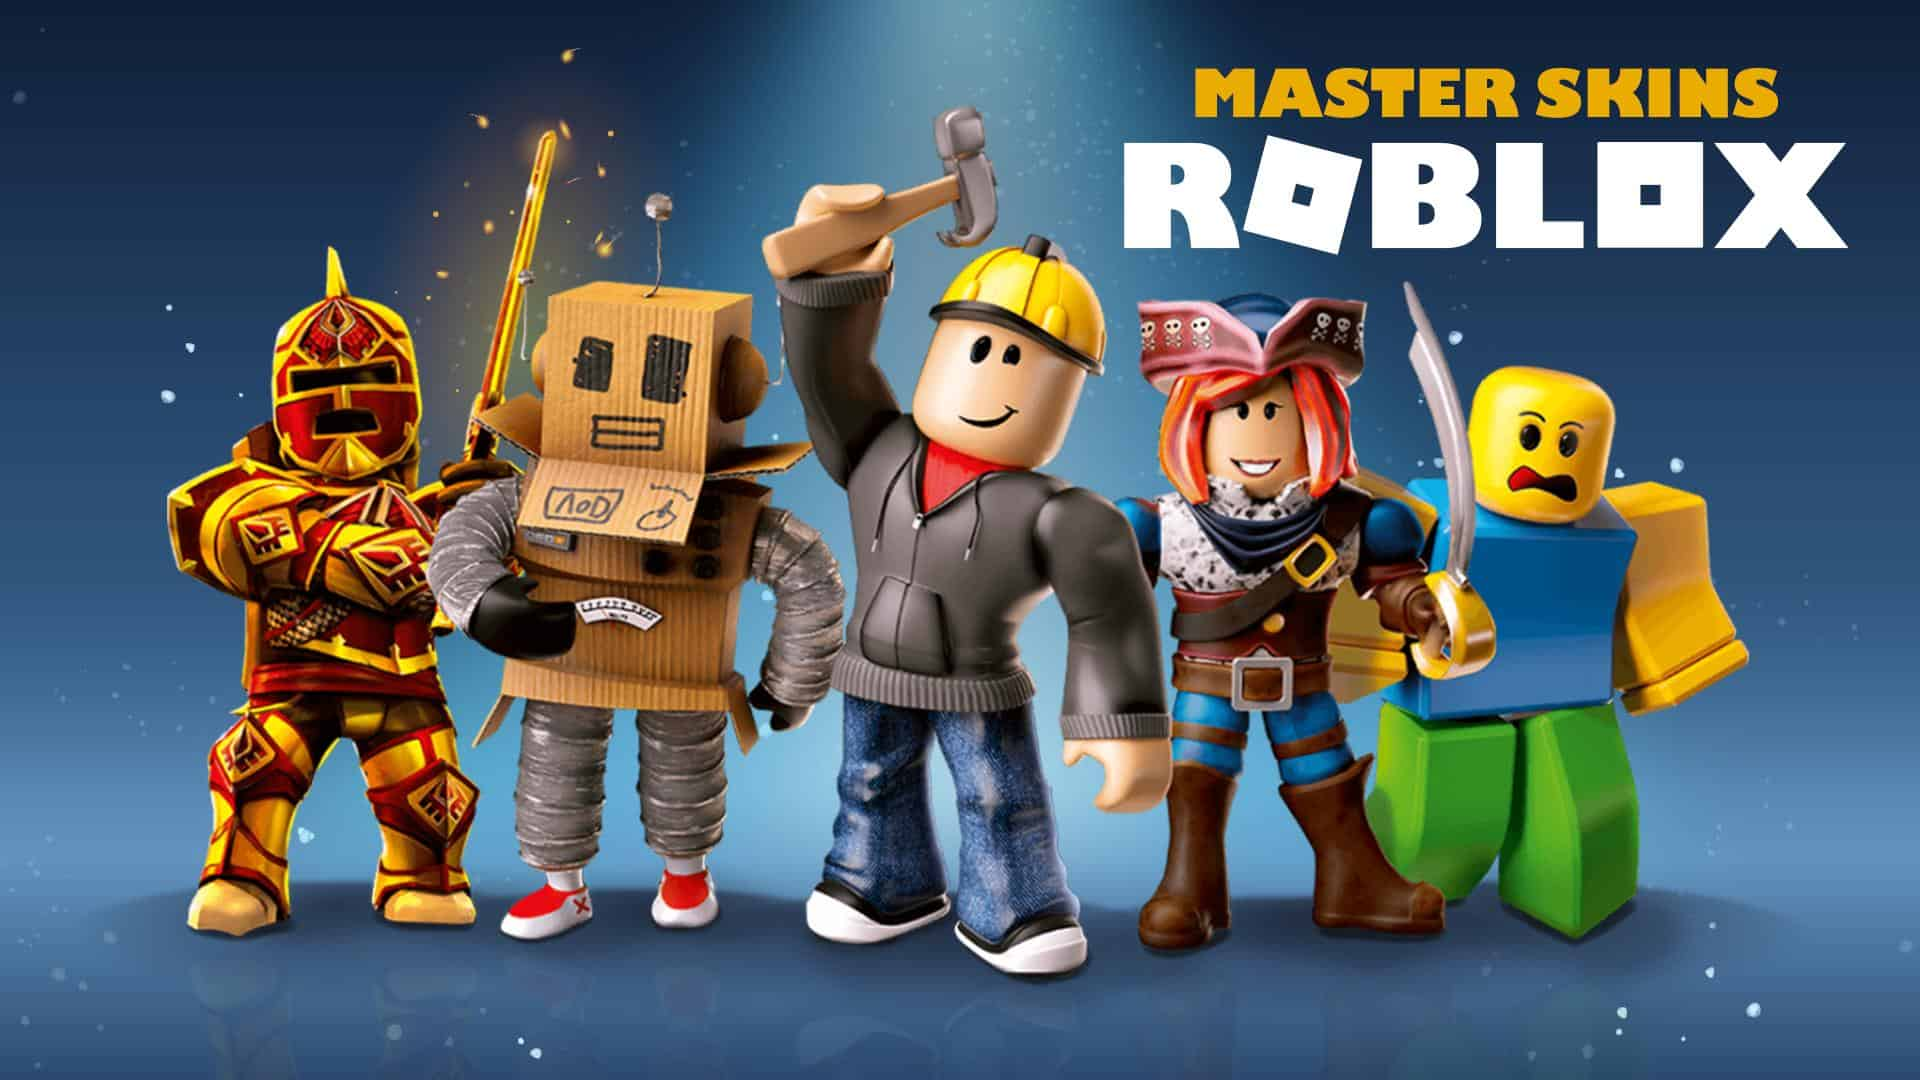 How to download Roblox 2021 for PC in easy and simple steps